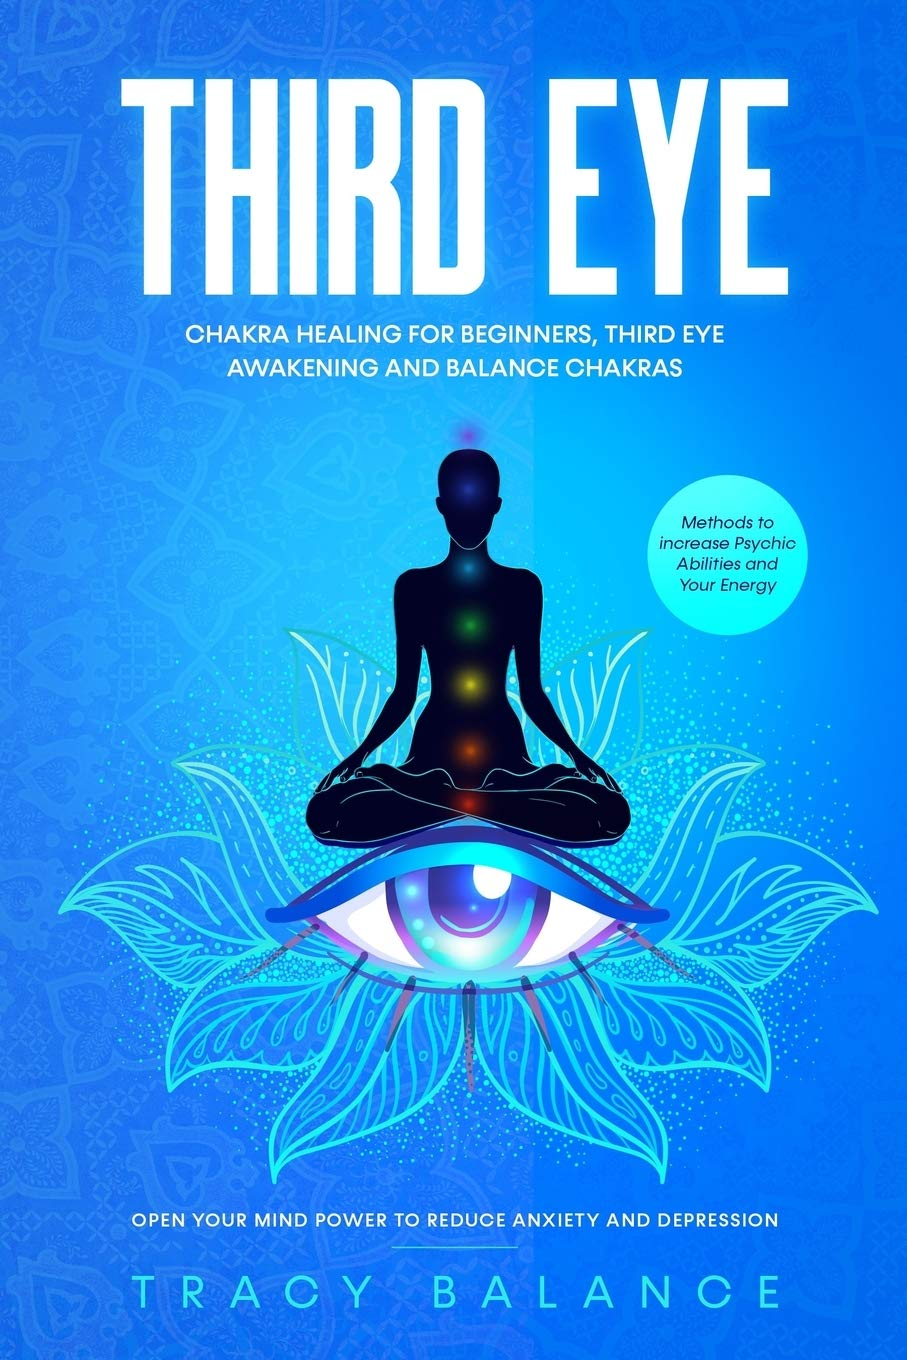 Image OfThird Eye: Chakra Healing For Beginners, Third Eye Awakening And Balance Chakras. Methods To Increase Psychic Abilities An...